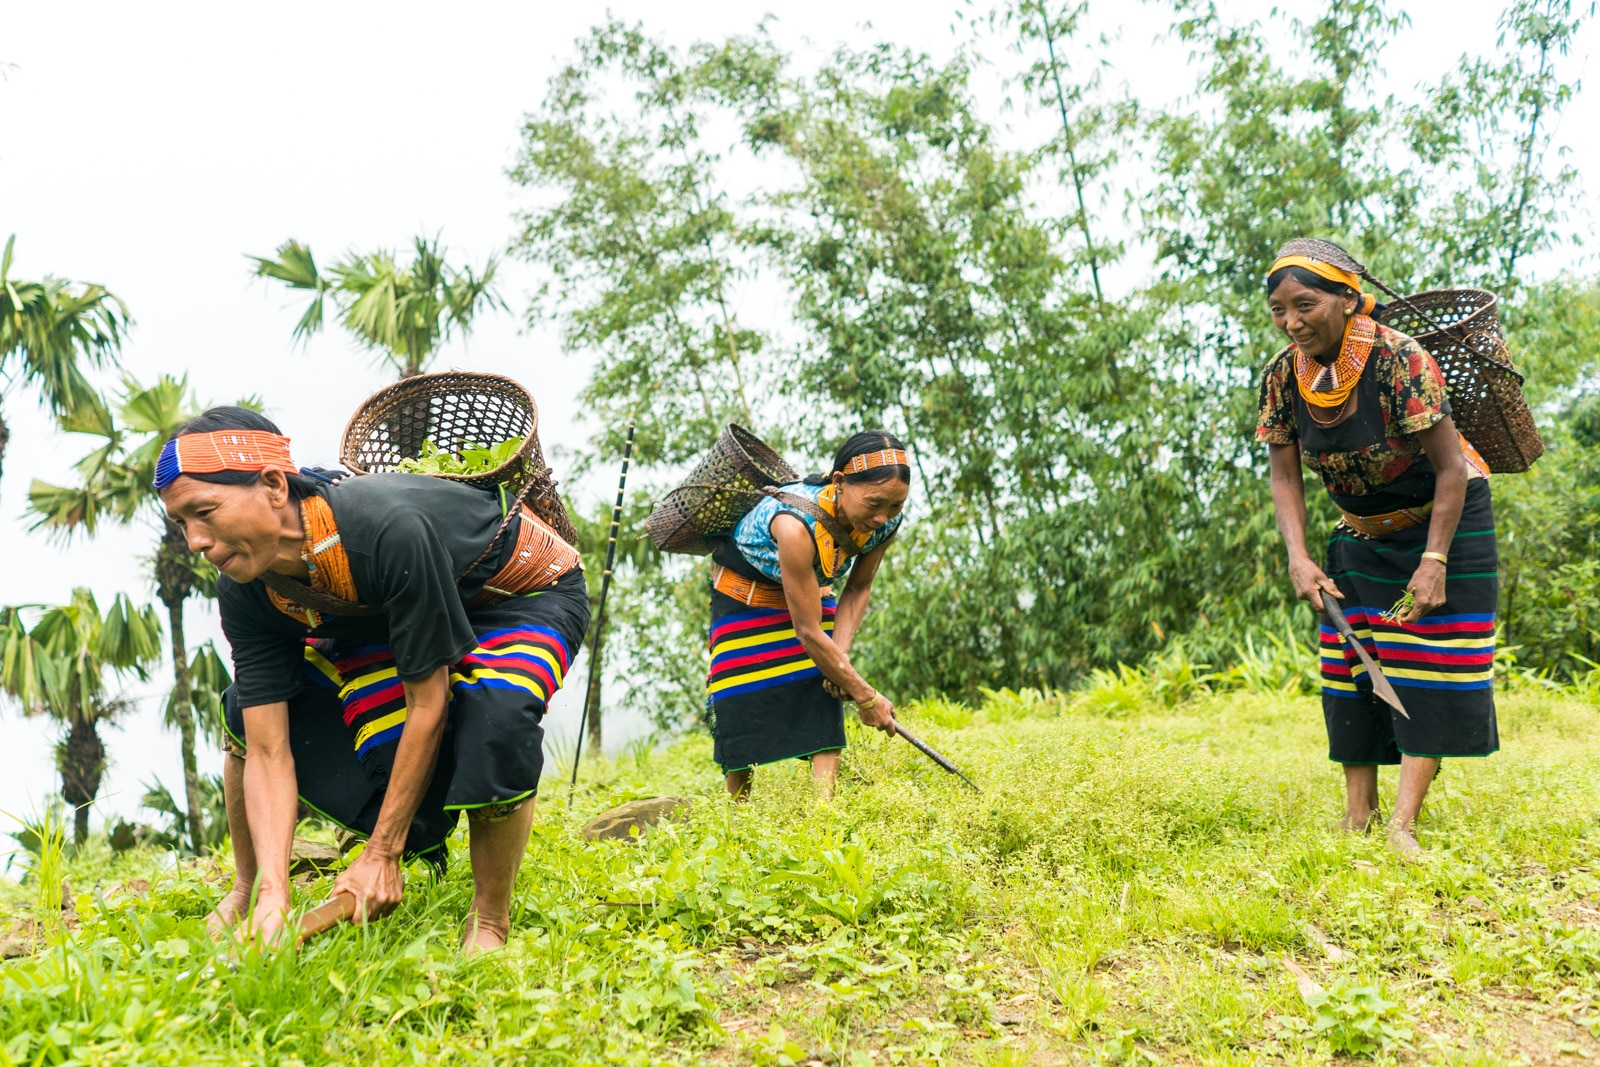 Photos of traditional tribal culture in Longwa village, Nagaland, Northeast India - Longwa women in traditional dress picking plants - Lost With Purpose